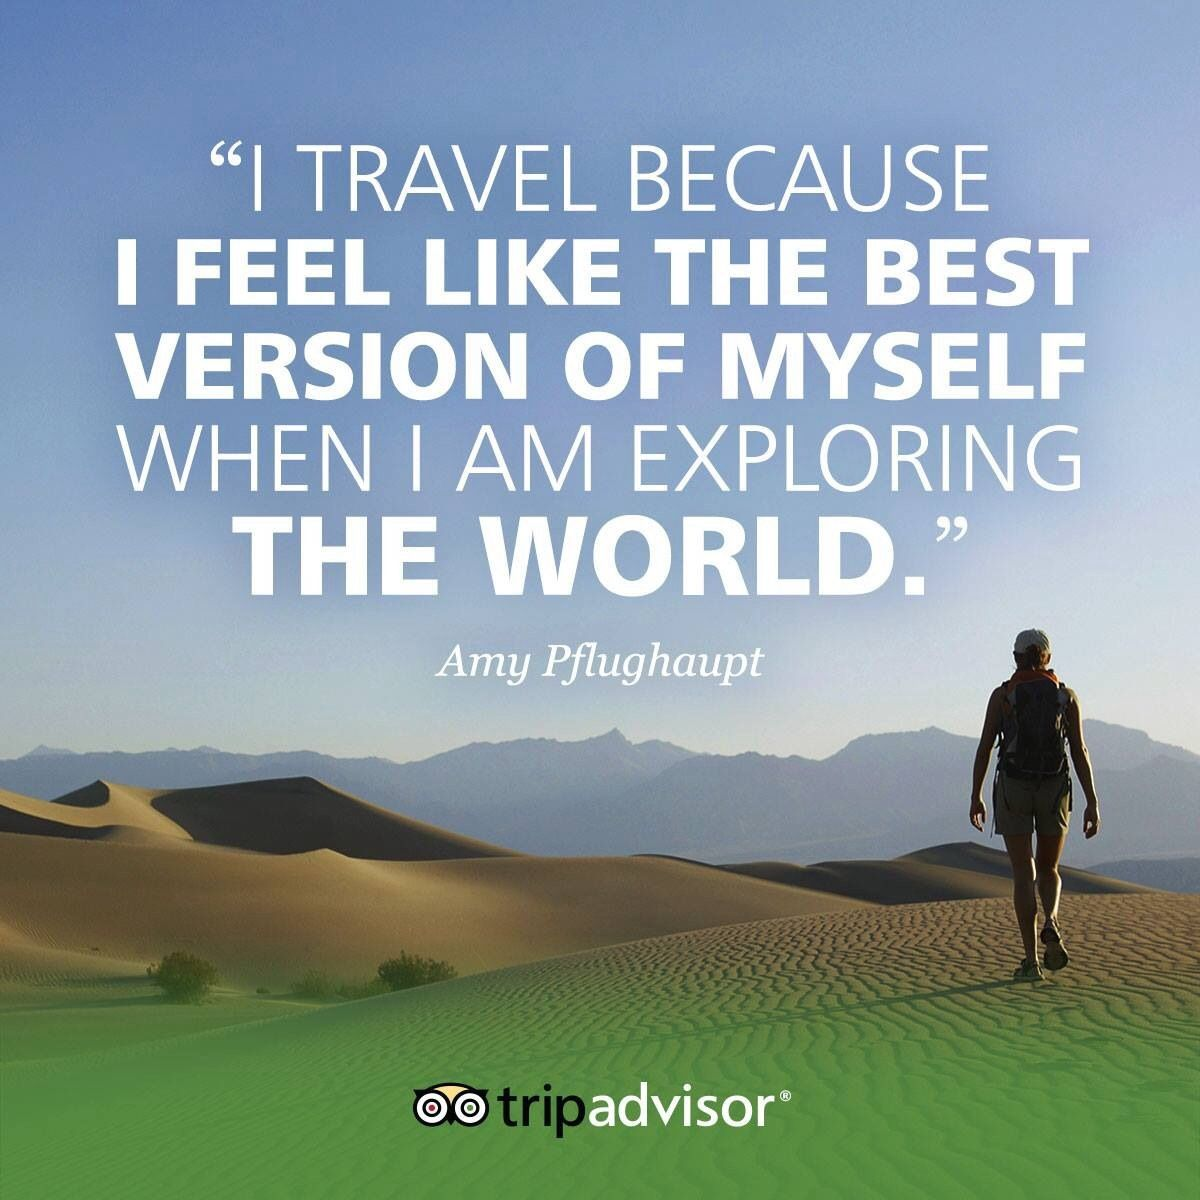 Explore The World Quotes I Travel Because I Feel Like The Best Version Of Myself When I Am